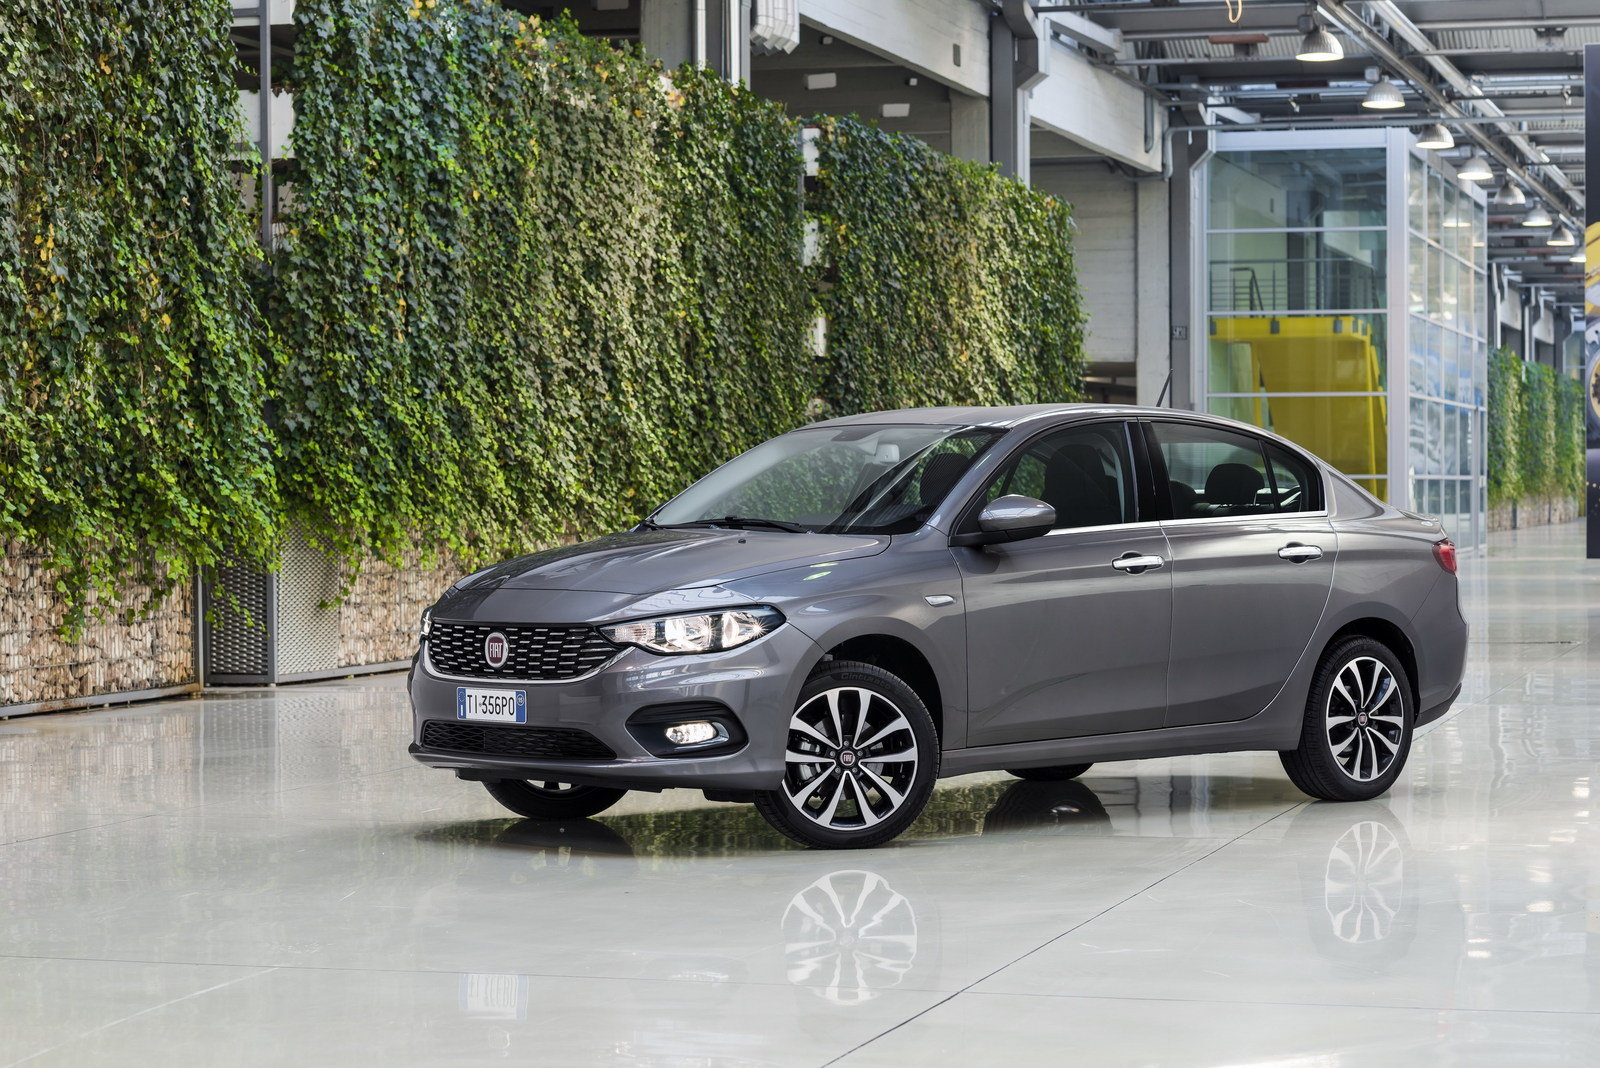 2017 fiat tipo picture 657825 car review top speed. Black Bedroom Furniture Sets. Home Design Ideas